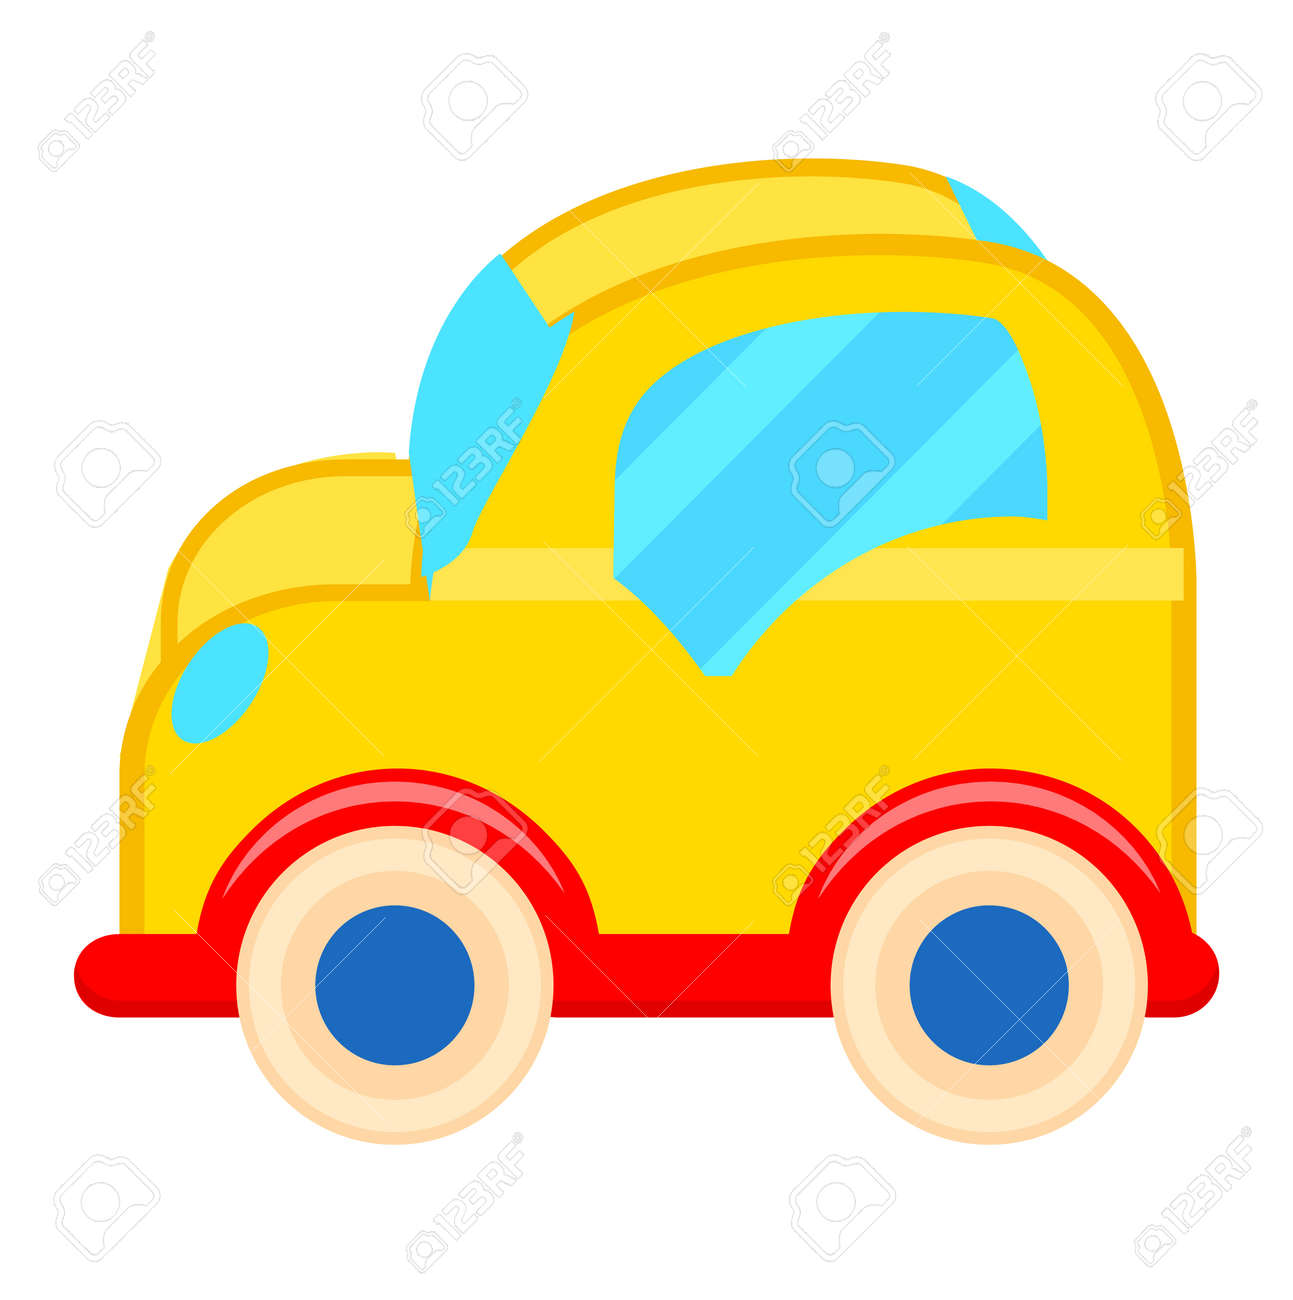 yellow toy car with white wheels illustration royalty free cliparts rh 123rf com